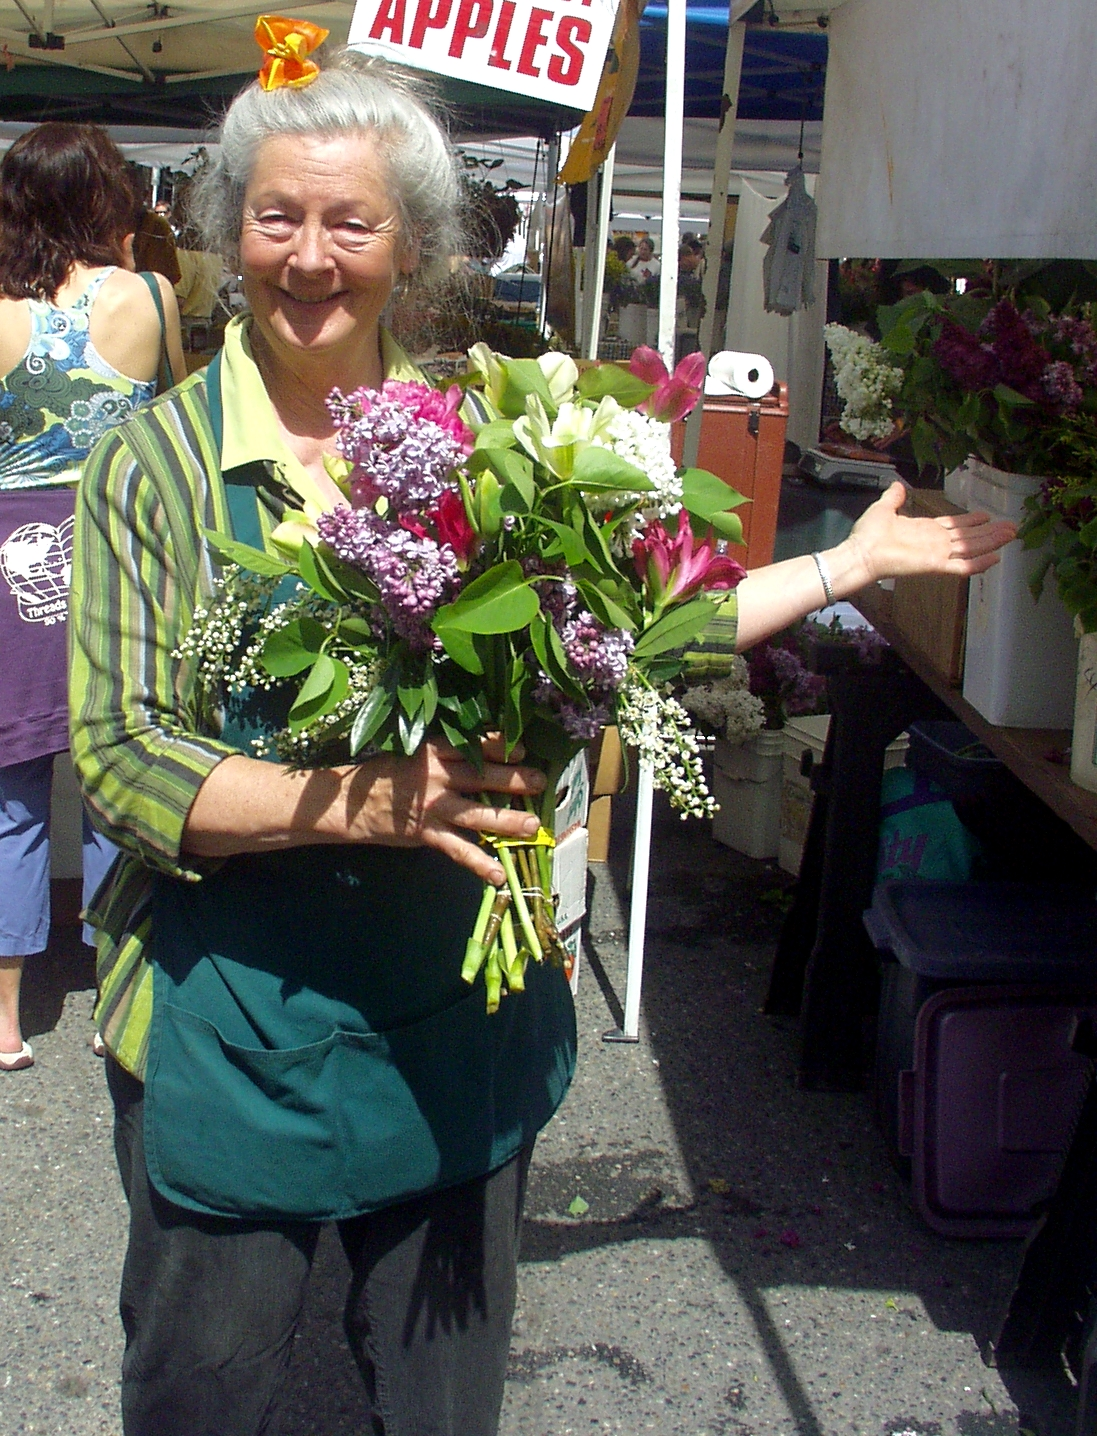 Alm Hill's Gretchen Hoyt making beautiful bouquets at Ballard Farmers Market on May 17th. Photo copyright 2009 by Zachary D. Lyons.